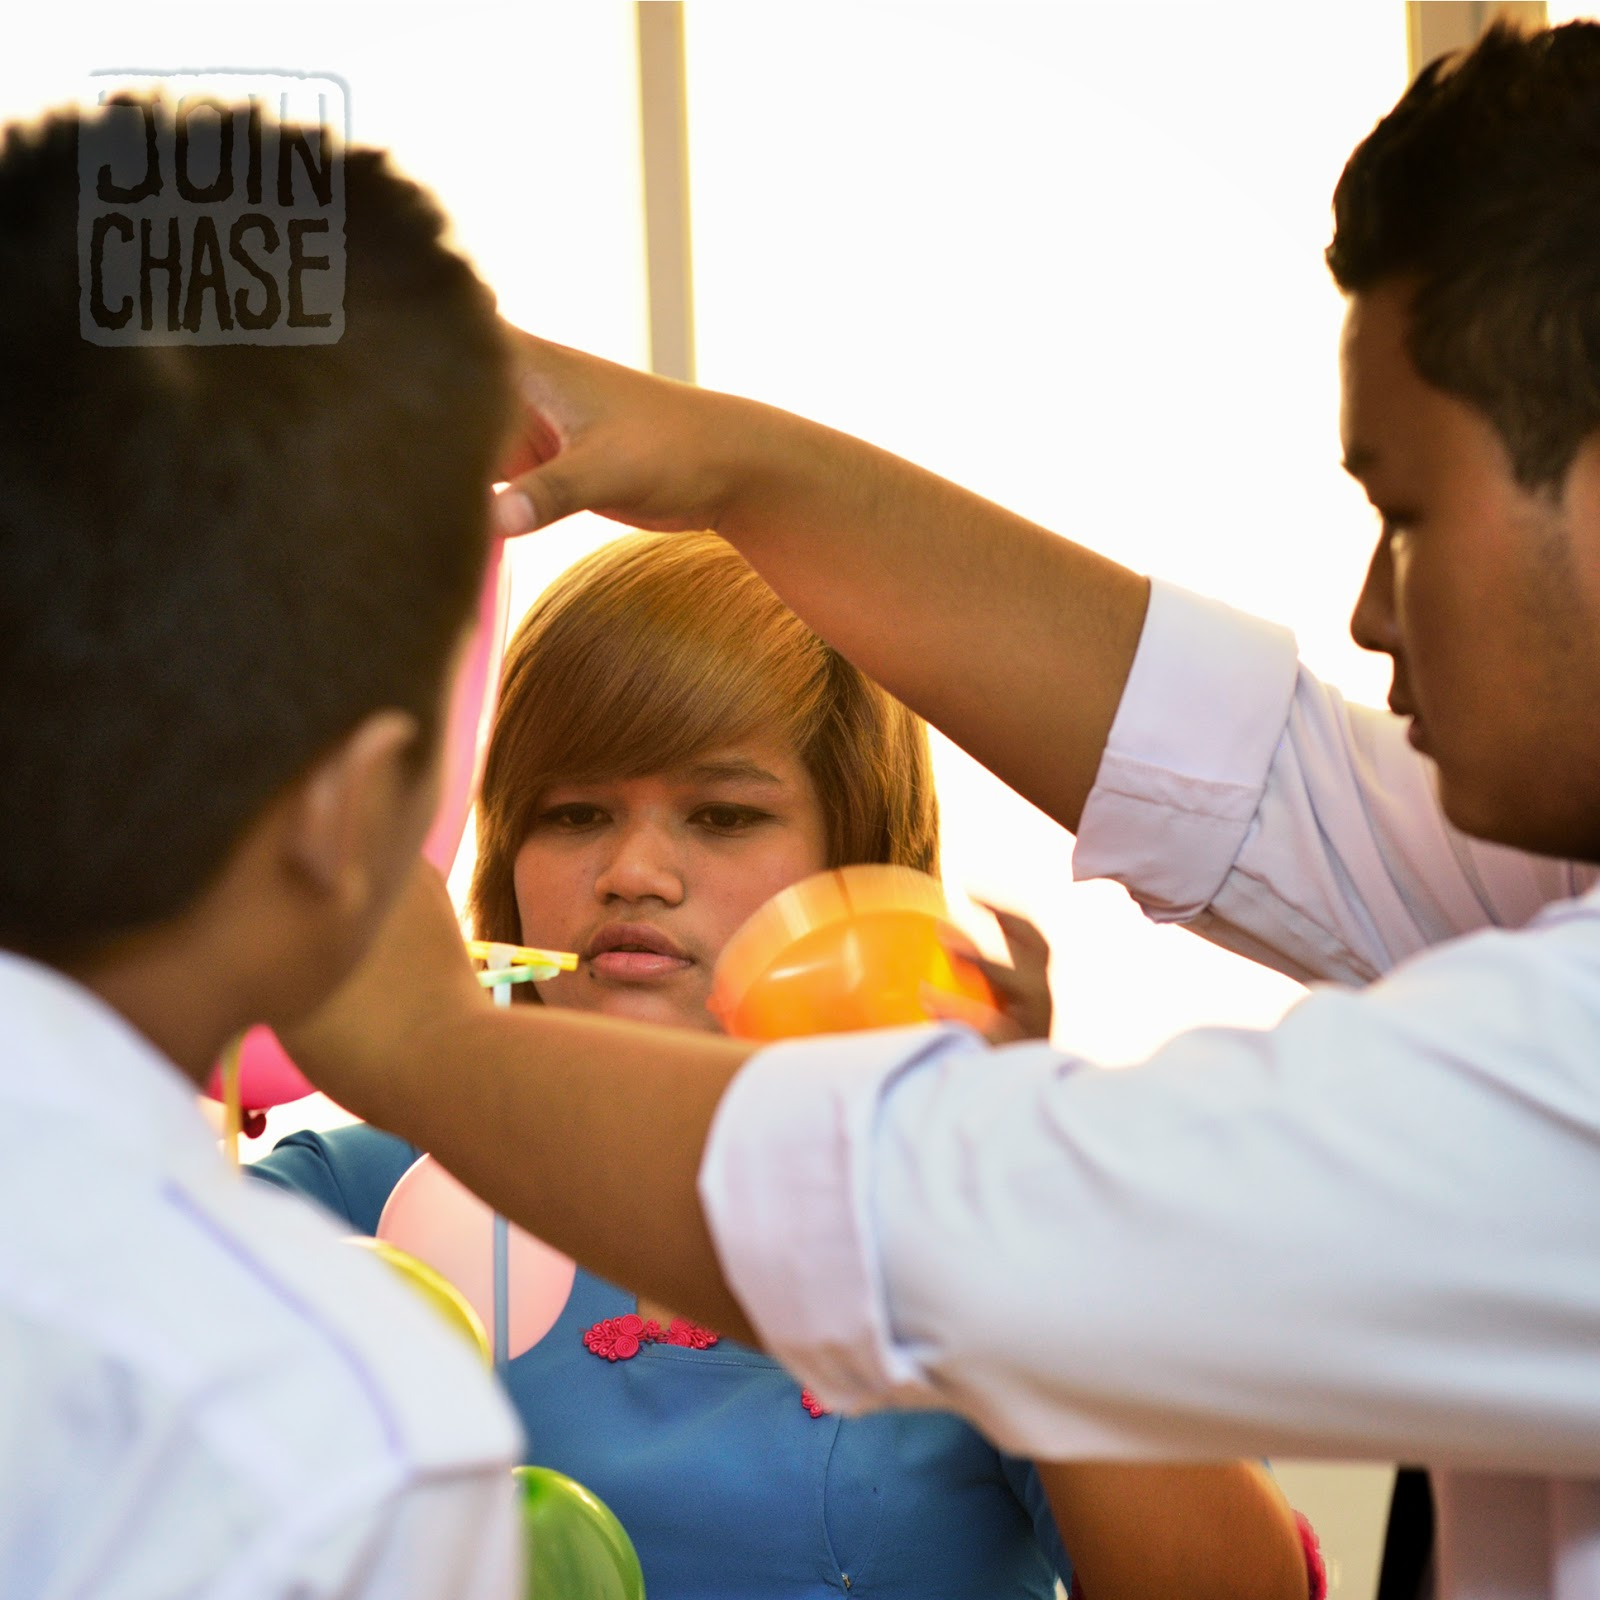 Students in Yangon, Myanmar, building a balloon tower during an English lesson.